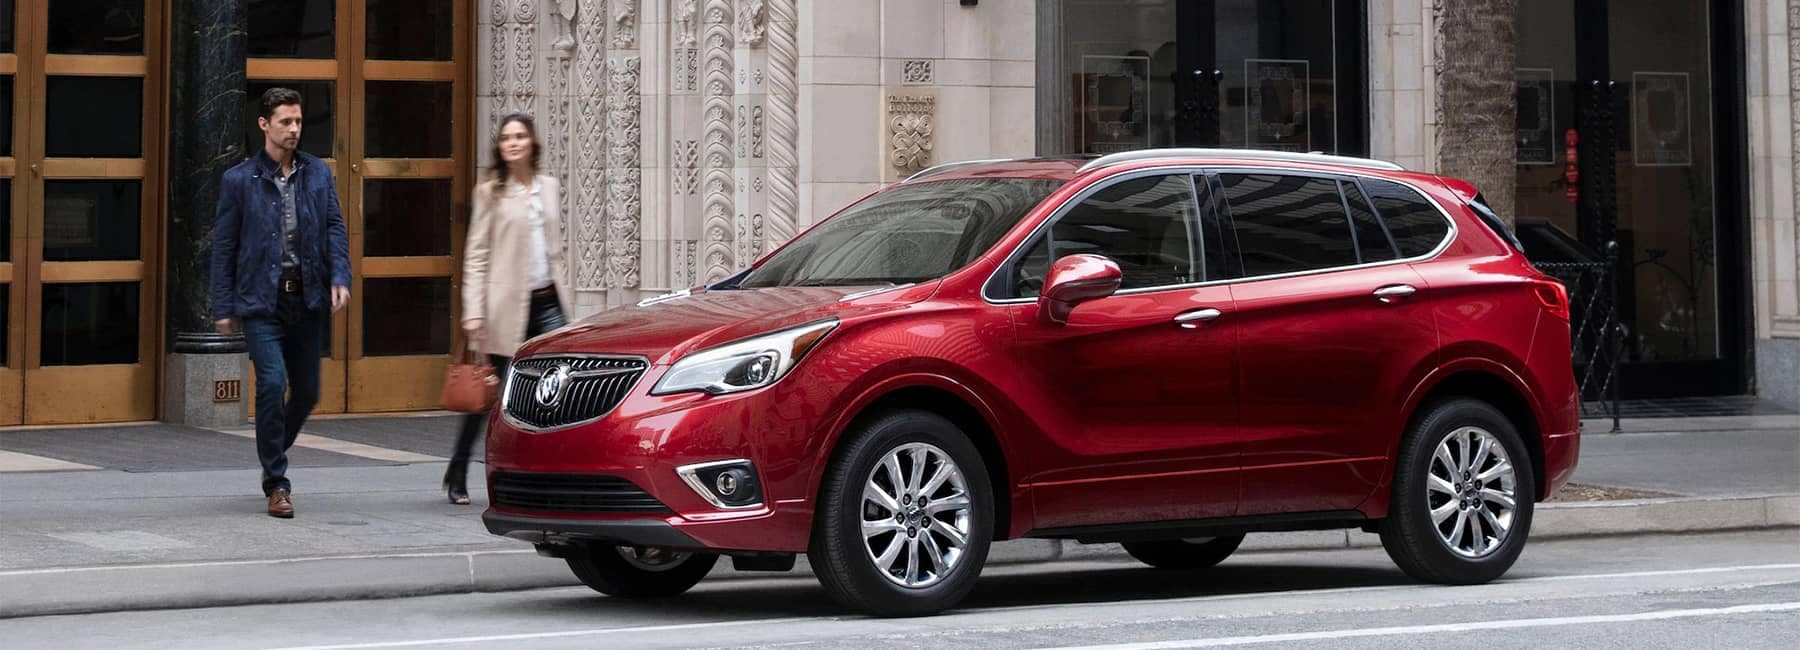 2020 Buick Envision Compact SUV with Man and Woman Walking